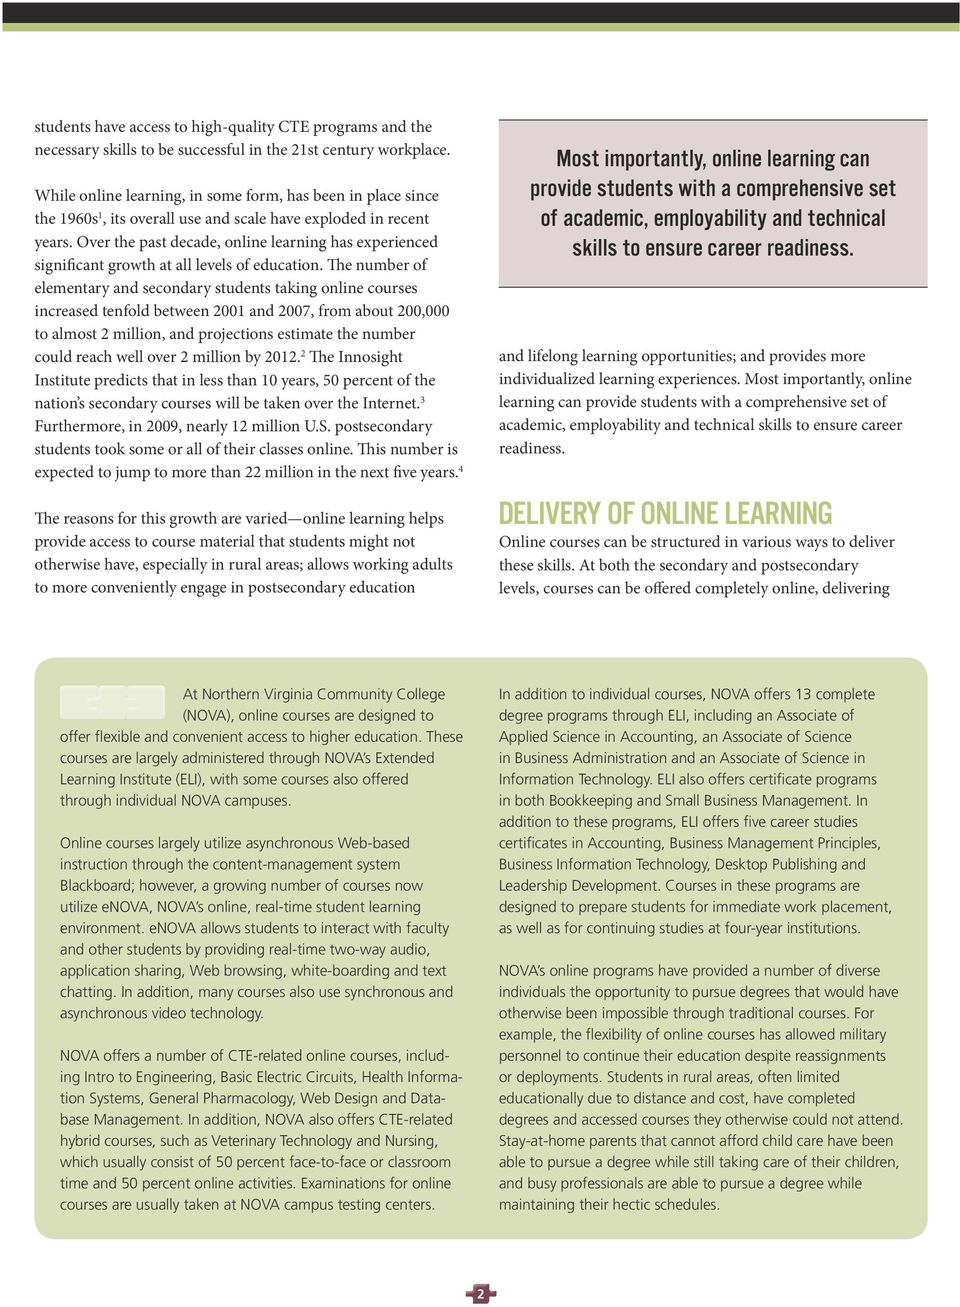 Over the past decade, online learning has experienced significant growth at all levels of education.